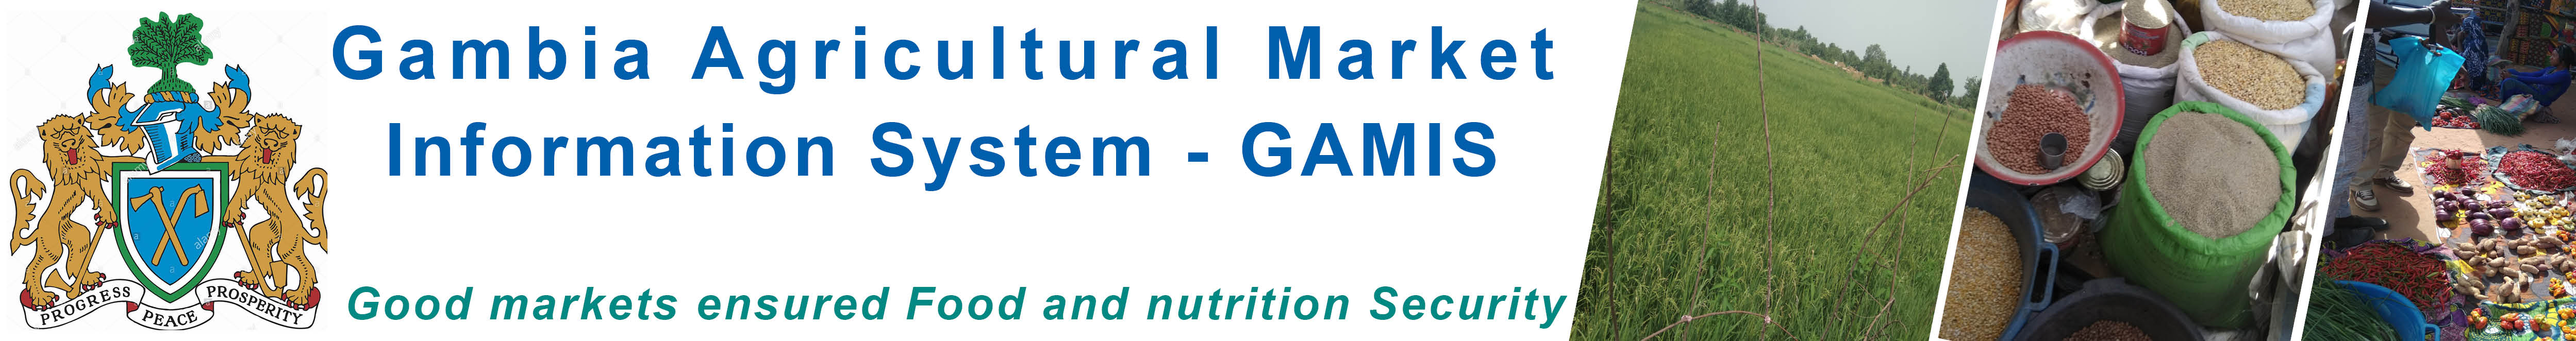 Gambia Agricultural Market Information System